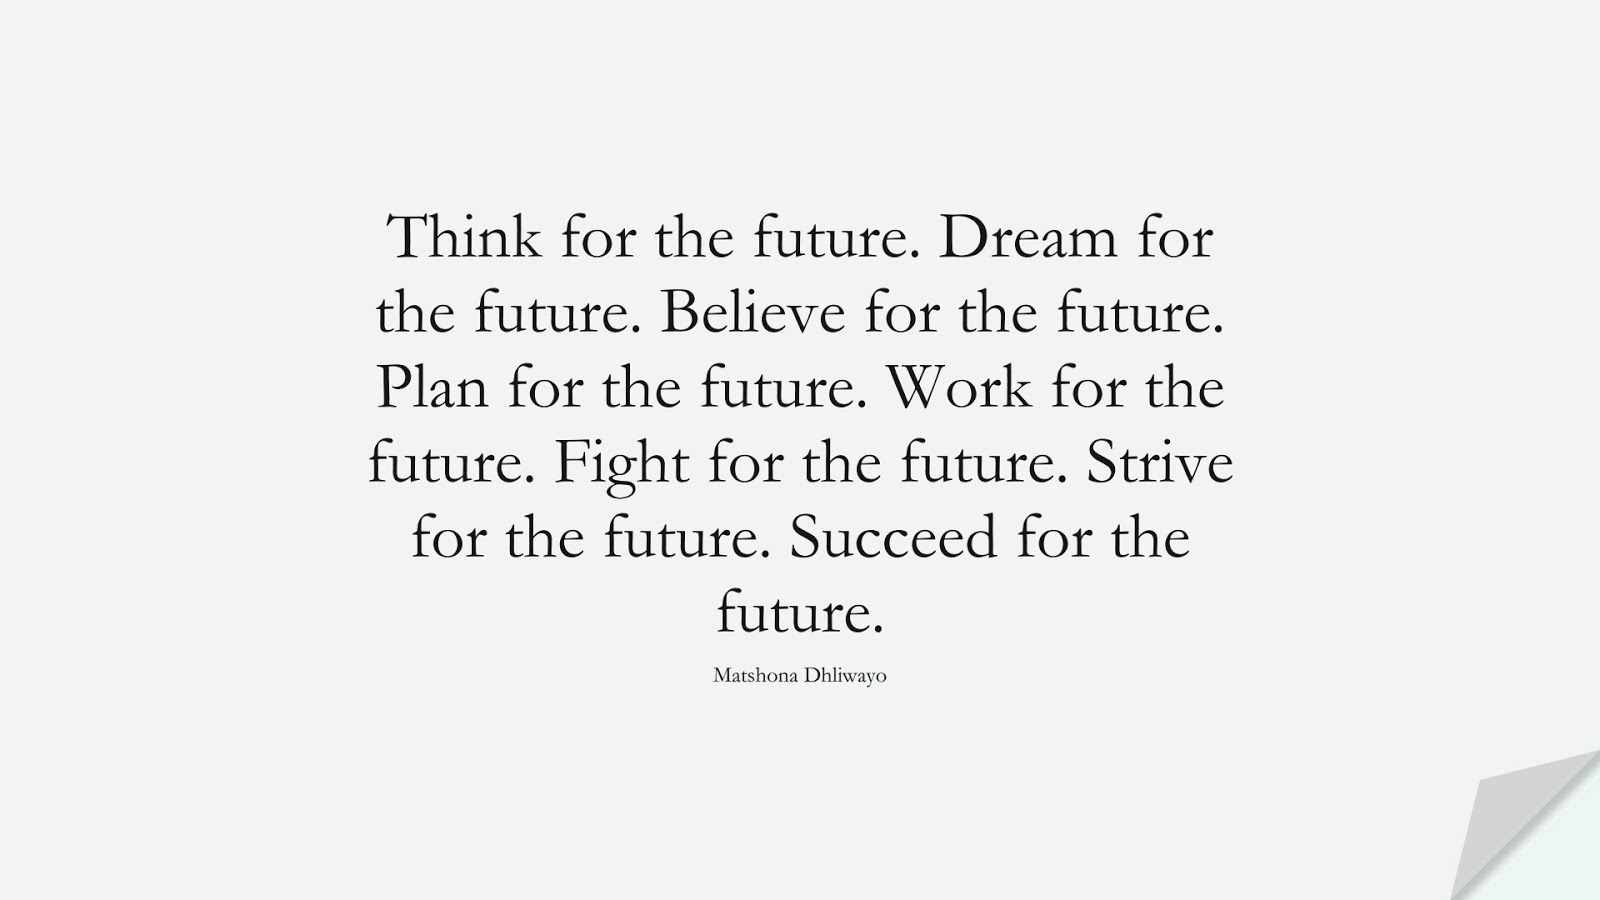 Think for the future. Dream for the future. Believe for the future. Plan for the future. Work for the future. Fight for the future. Strive for the future. Succeed for the future. (Matshona Dhliwayo);  #PerseveranceQuotes